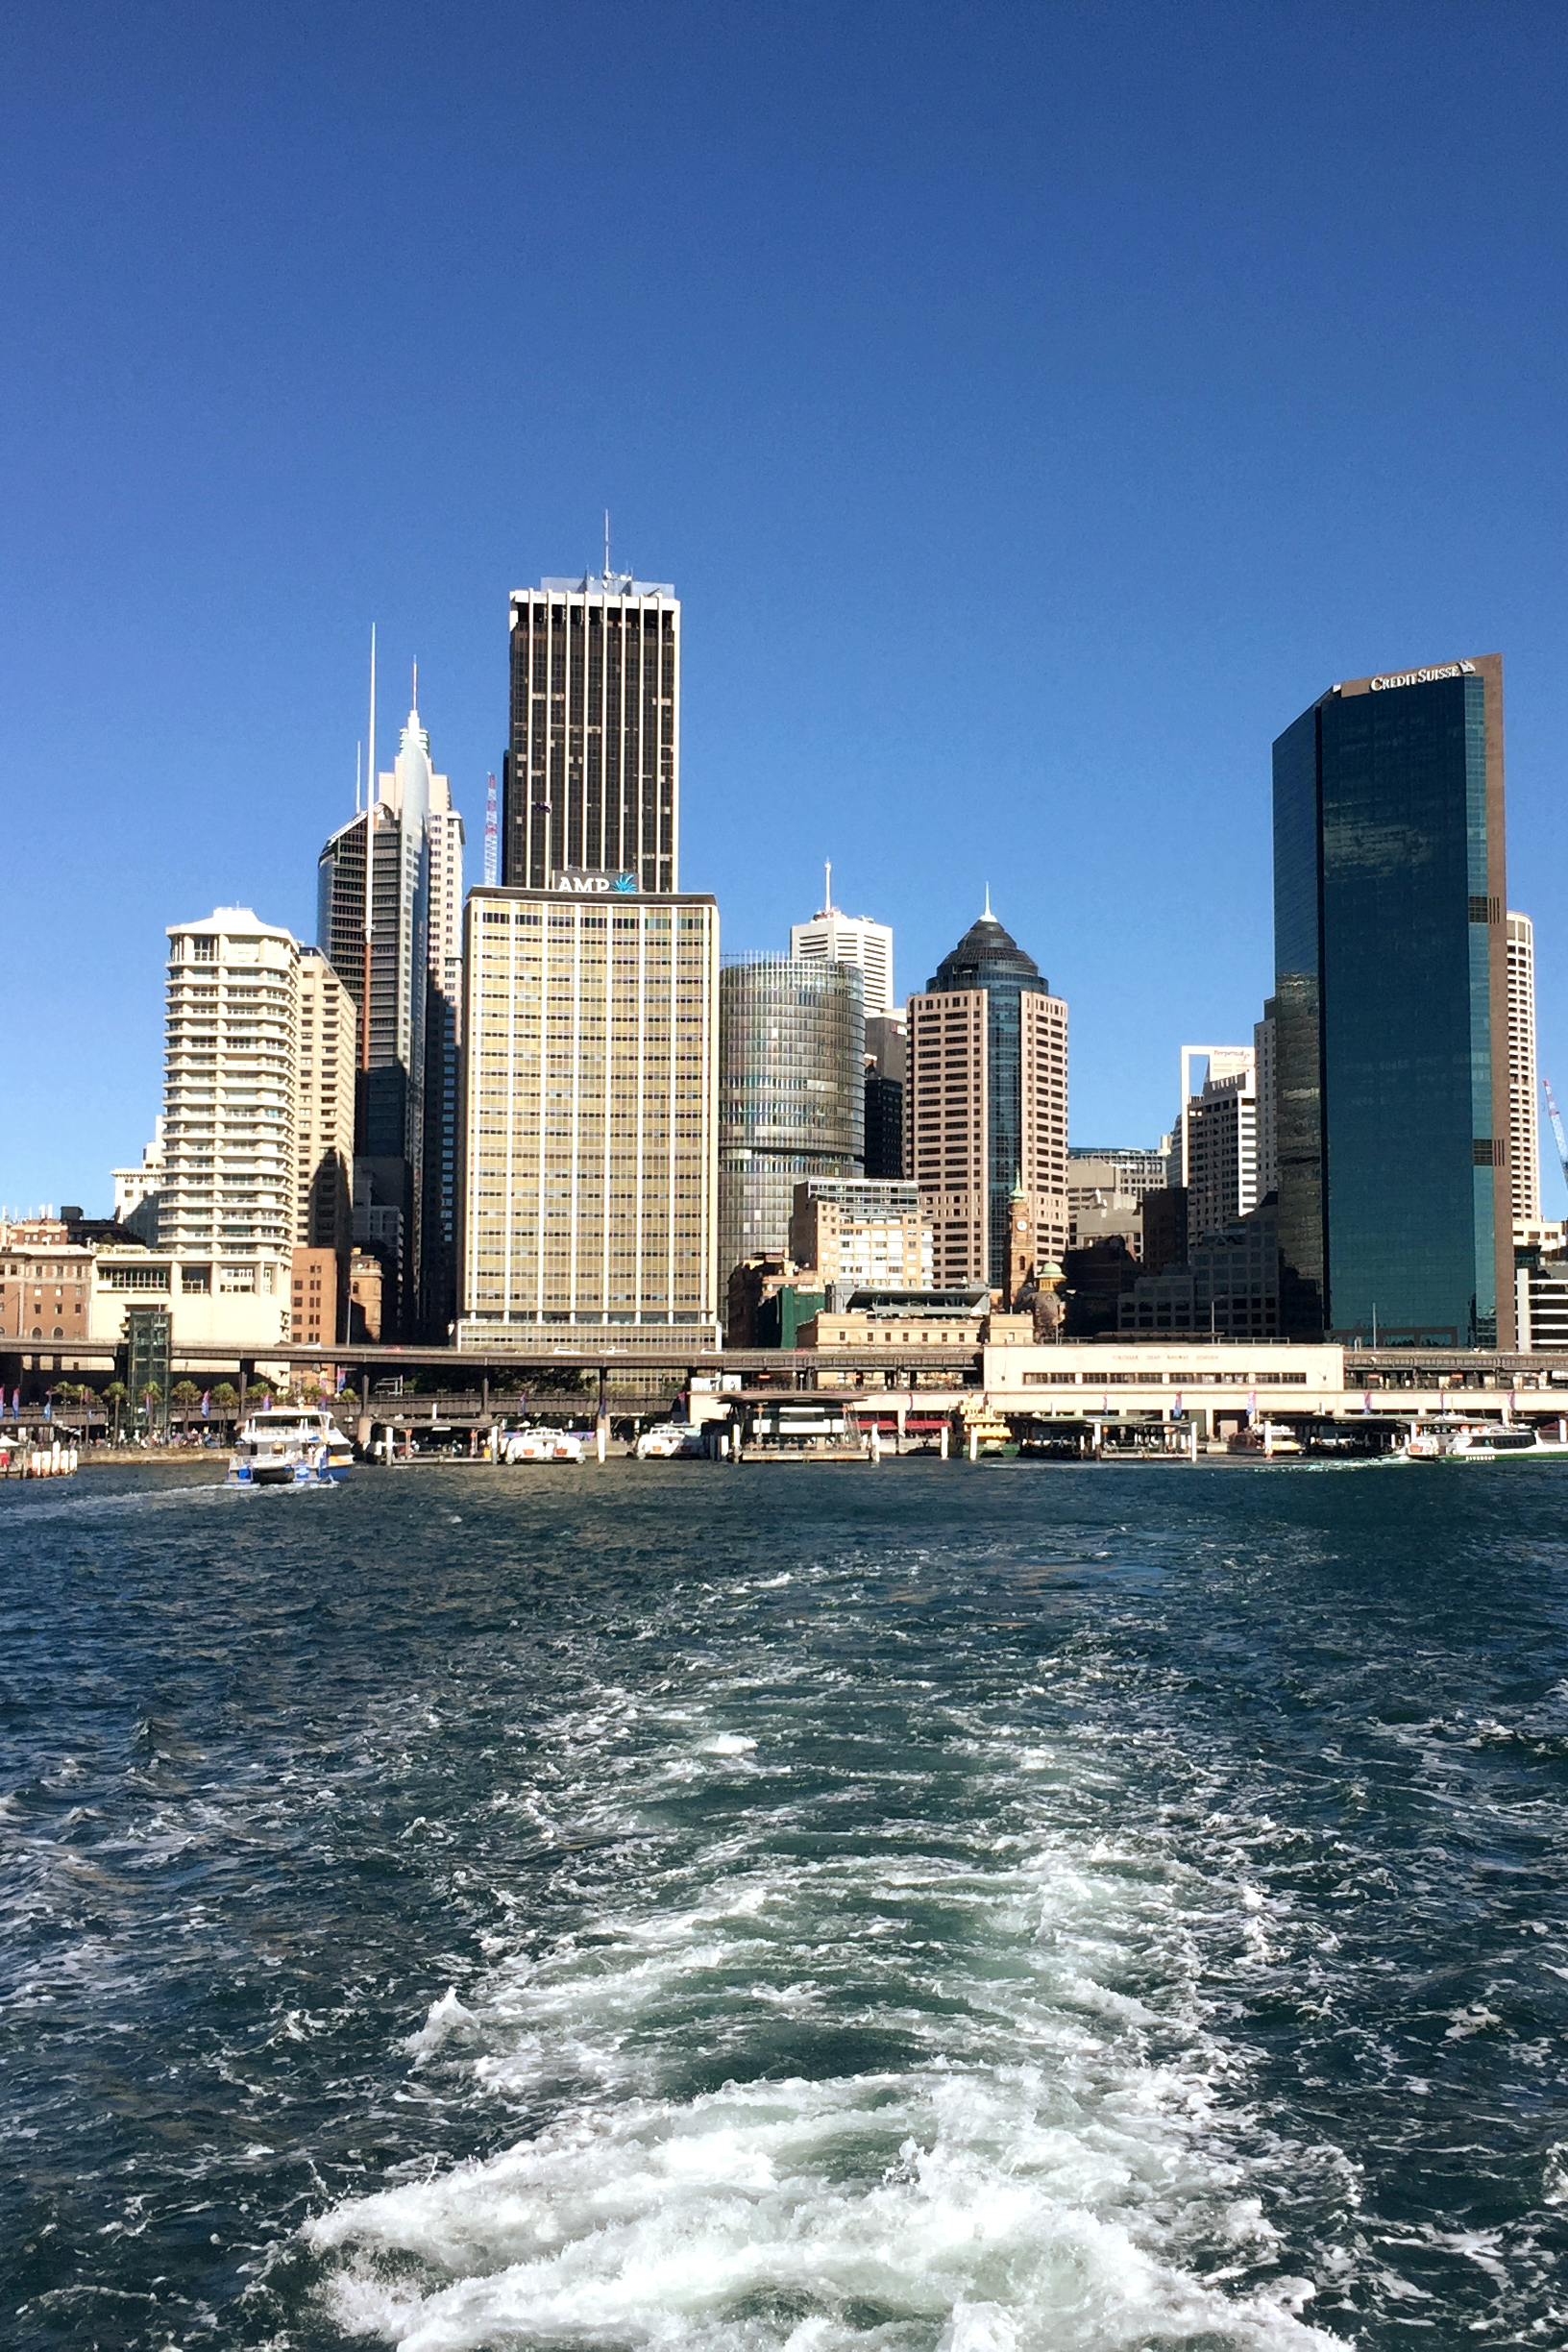 The view of Circular Quay from the ferry